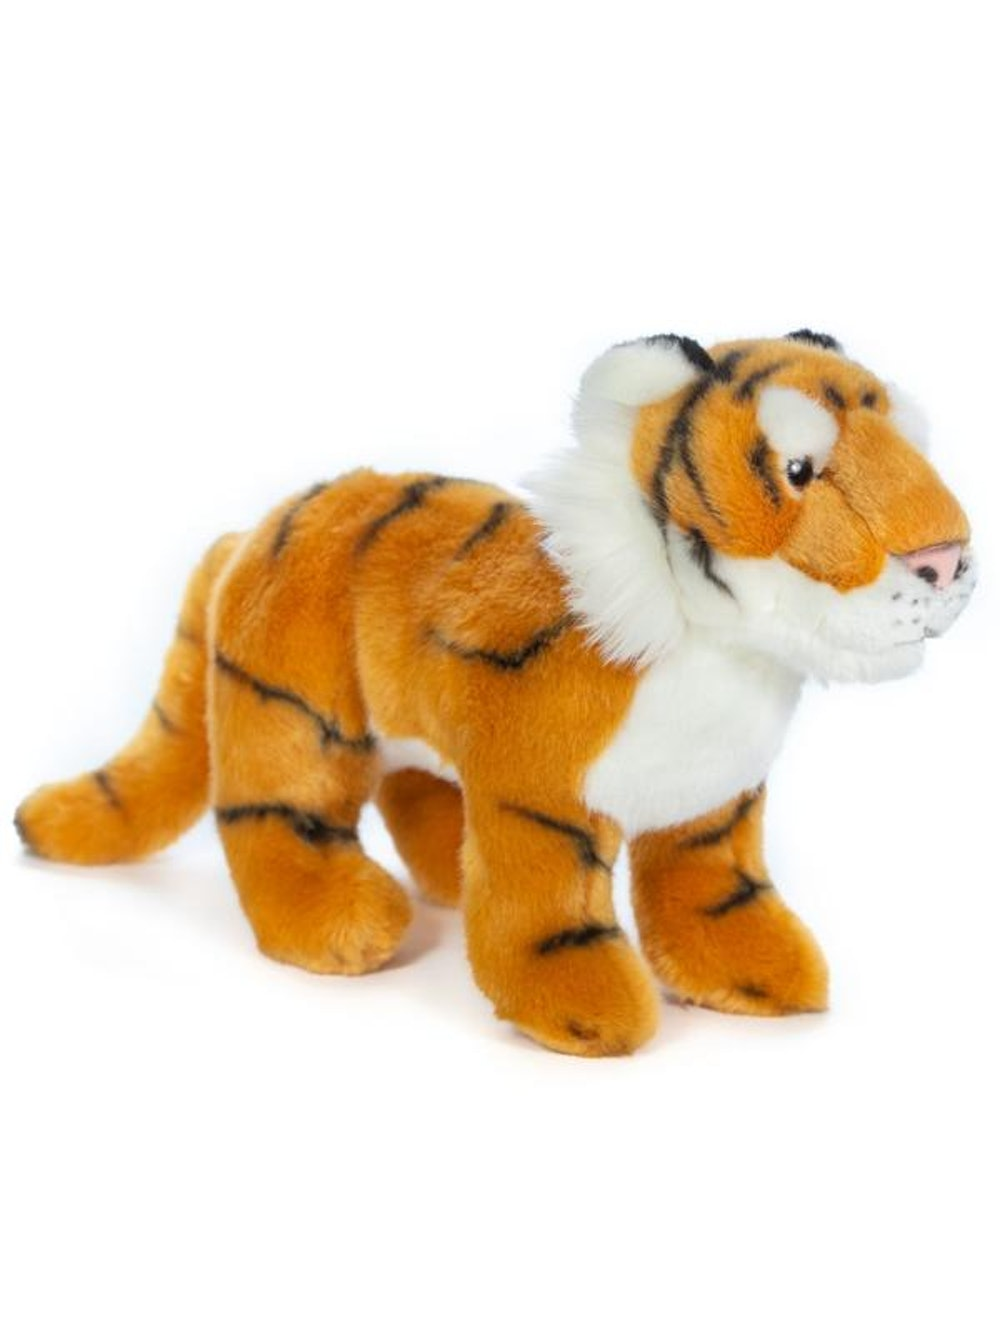 Standing 12 Inch Stuffed Tiger Plush Floppy Animal Kingdom Collection